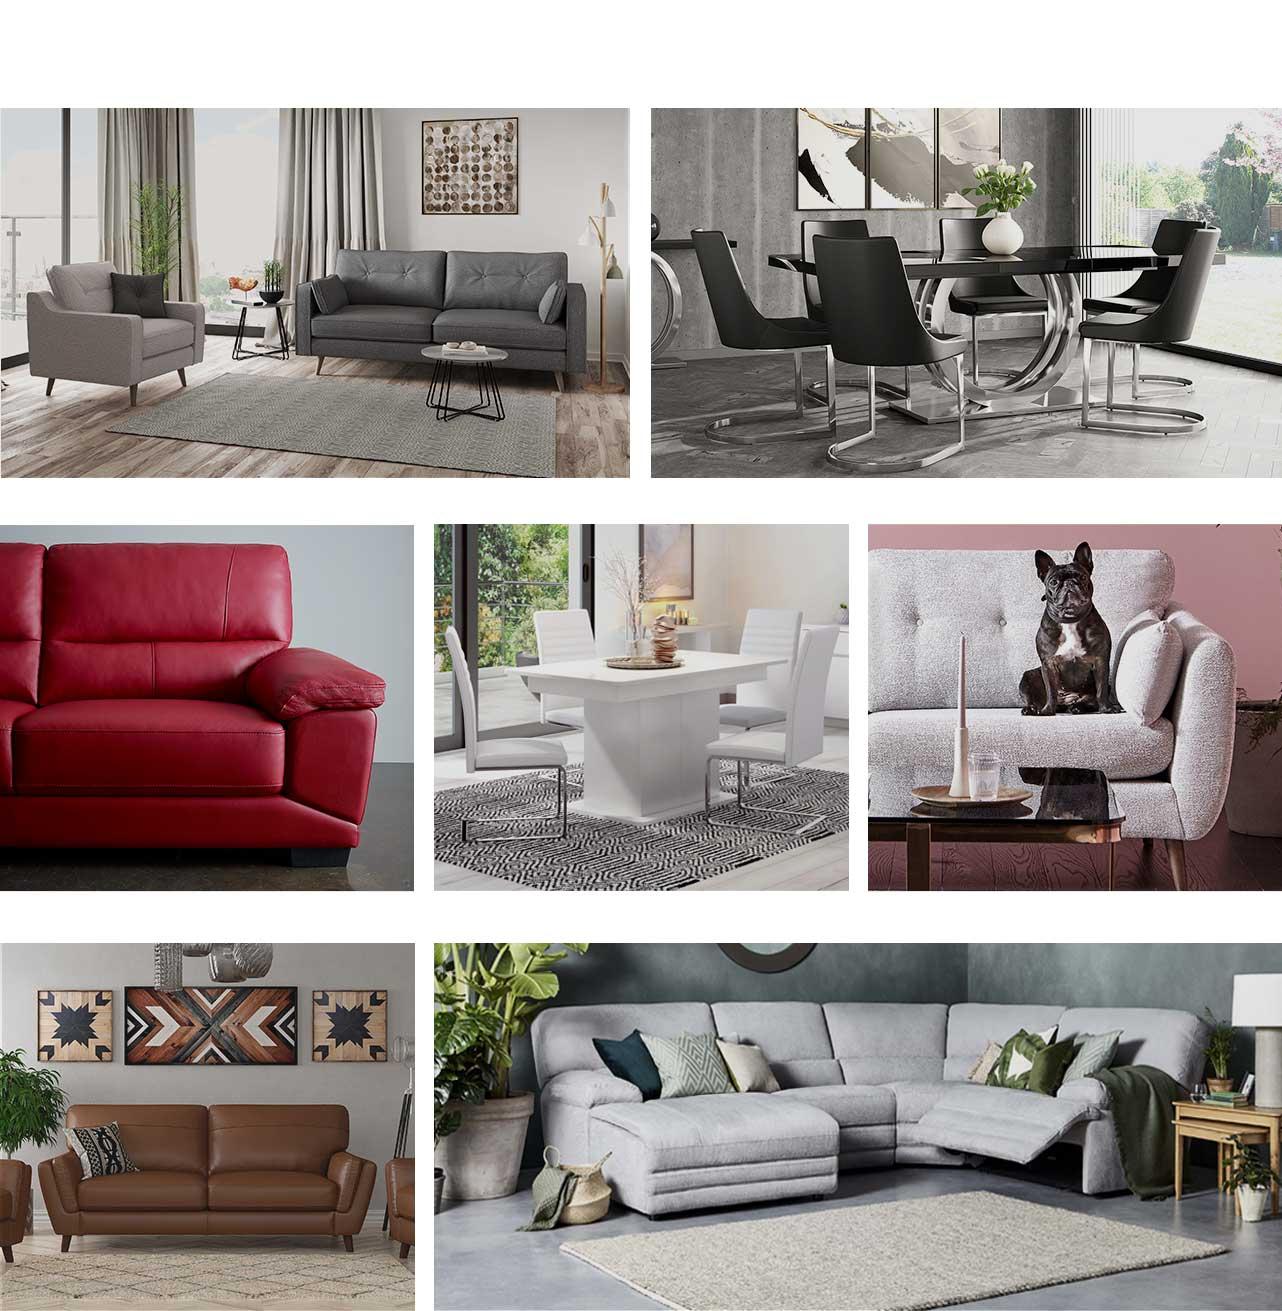 Sofa Sale Harveys Harveys Furniture Shop Sofas Dining Home Accessories More